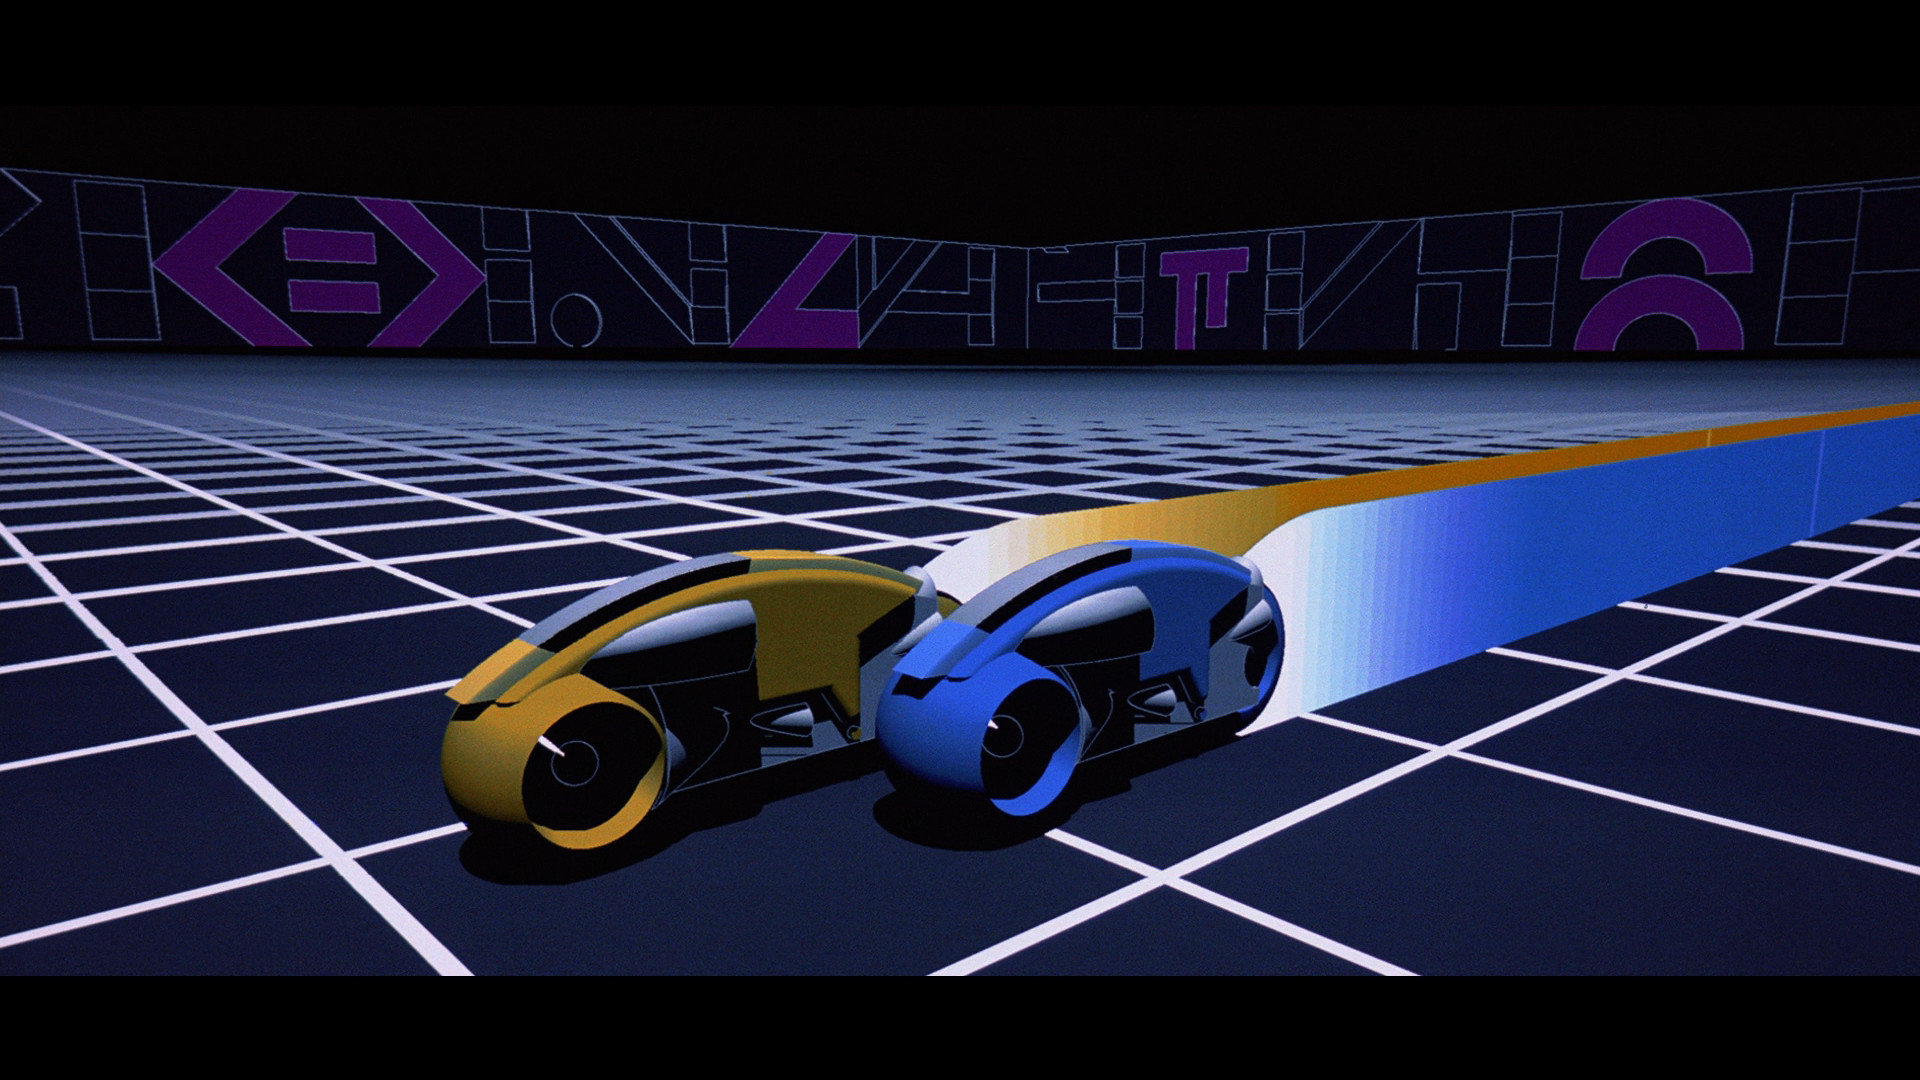 Free TRON Legacy High Quality Wallpaper ID379441 For Full Hd 1080p Computer